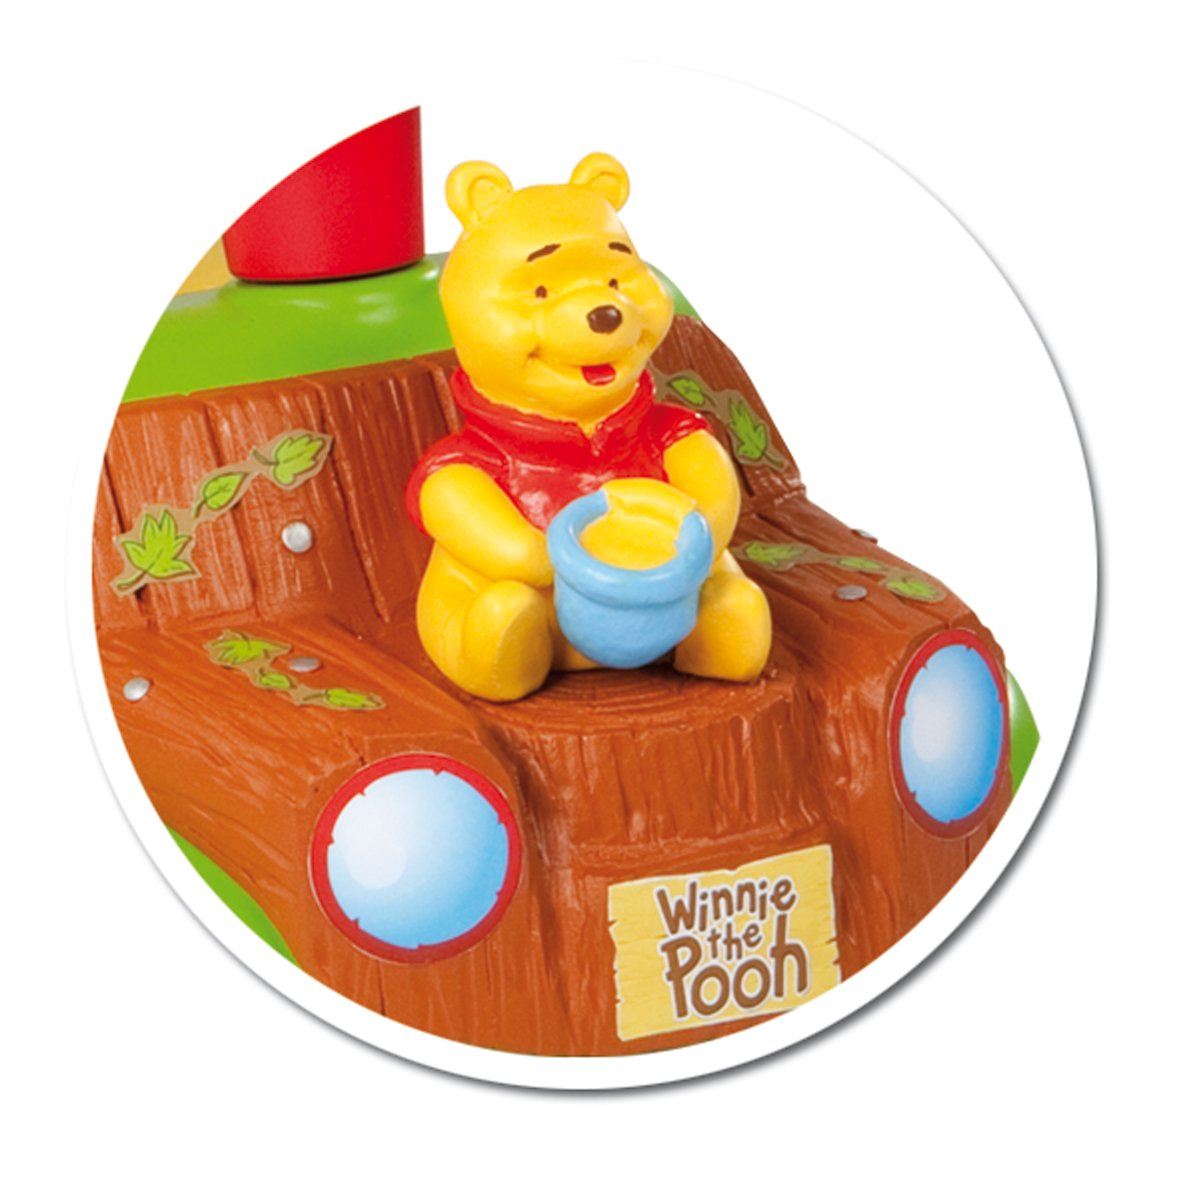 Amazon.com: Smoby 445002 Winnie The Pooh Comfort - Peluche ...